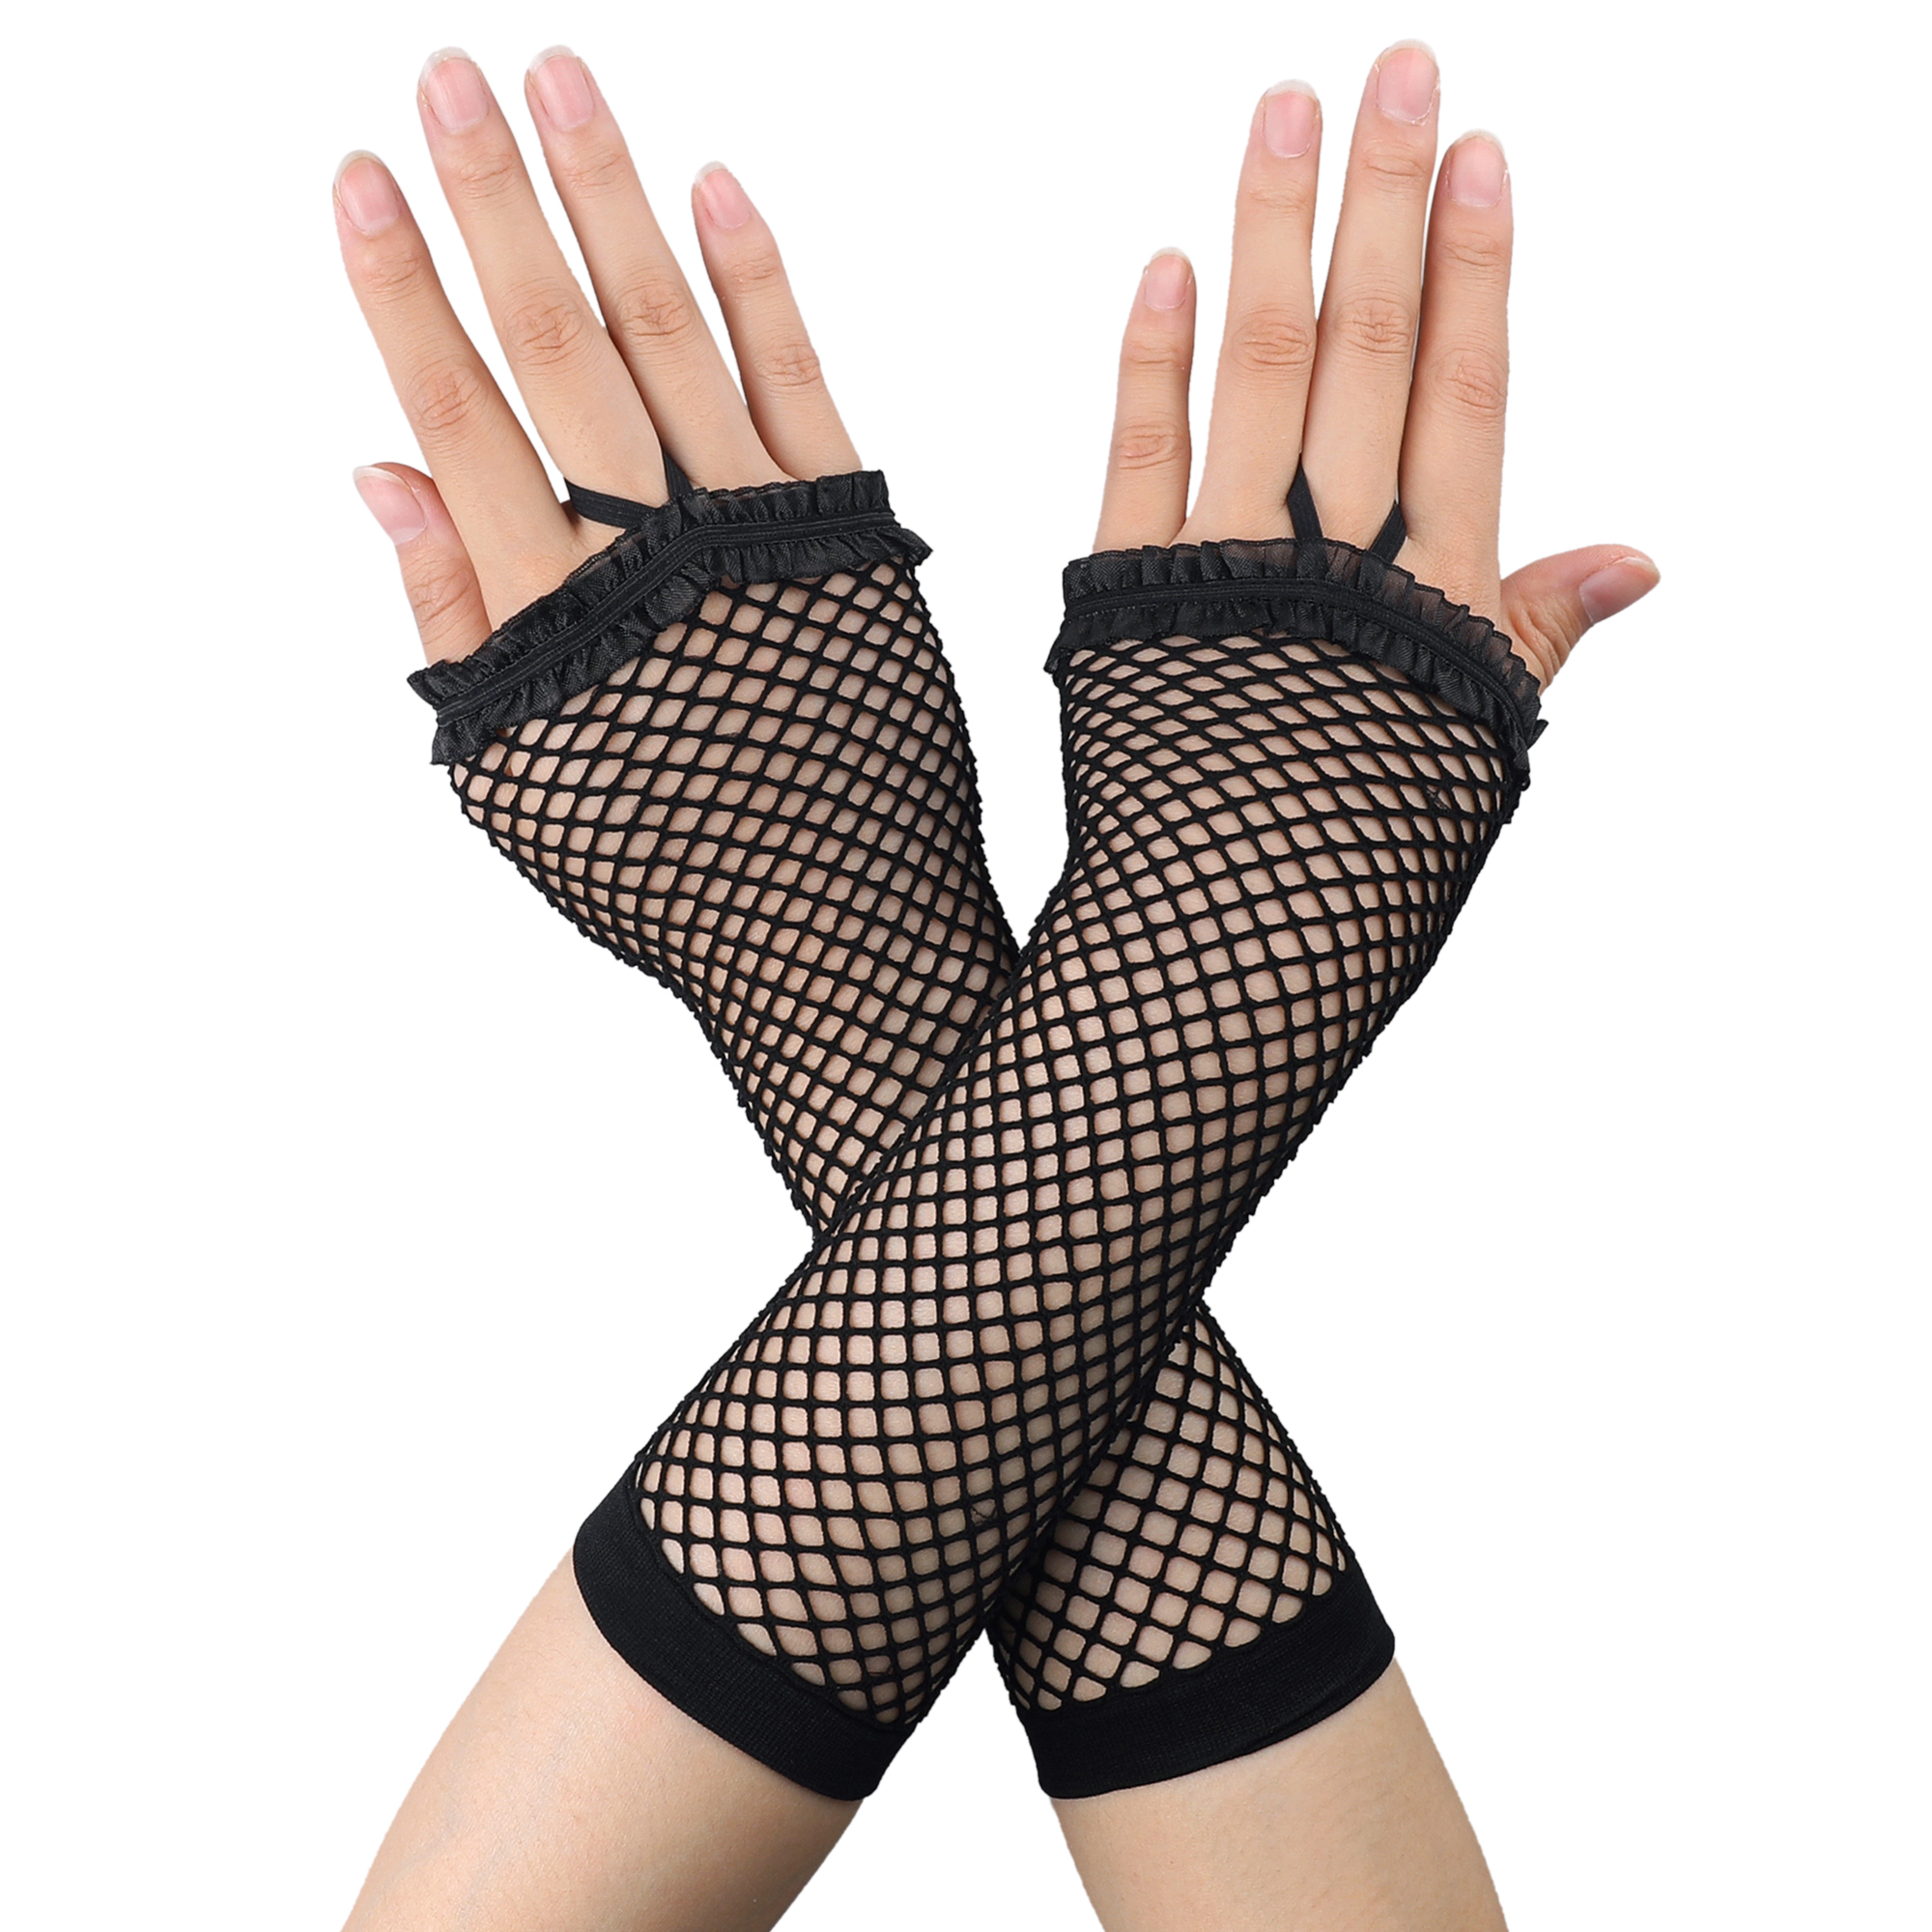 Pair Black Elastic Mesh Fish Net Elbow Fingerless Goth Arm Warmers for Women